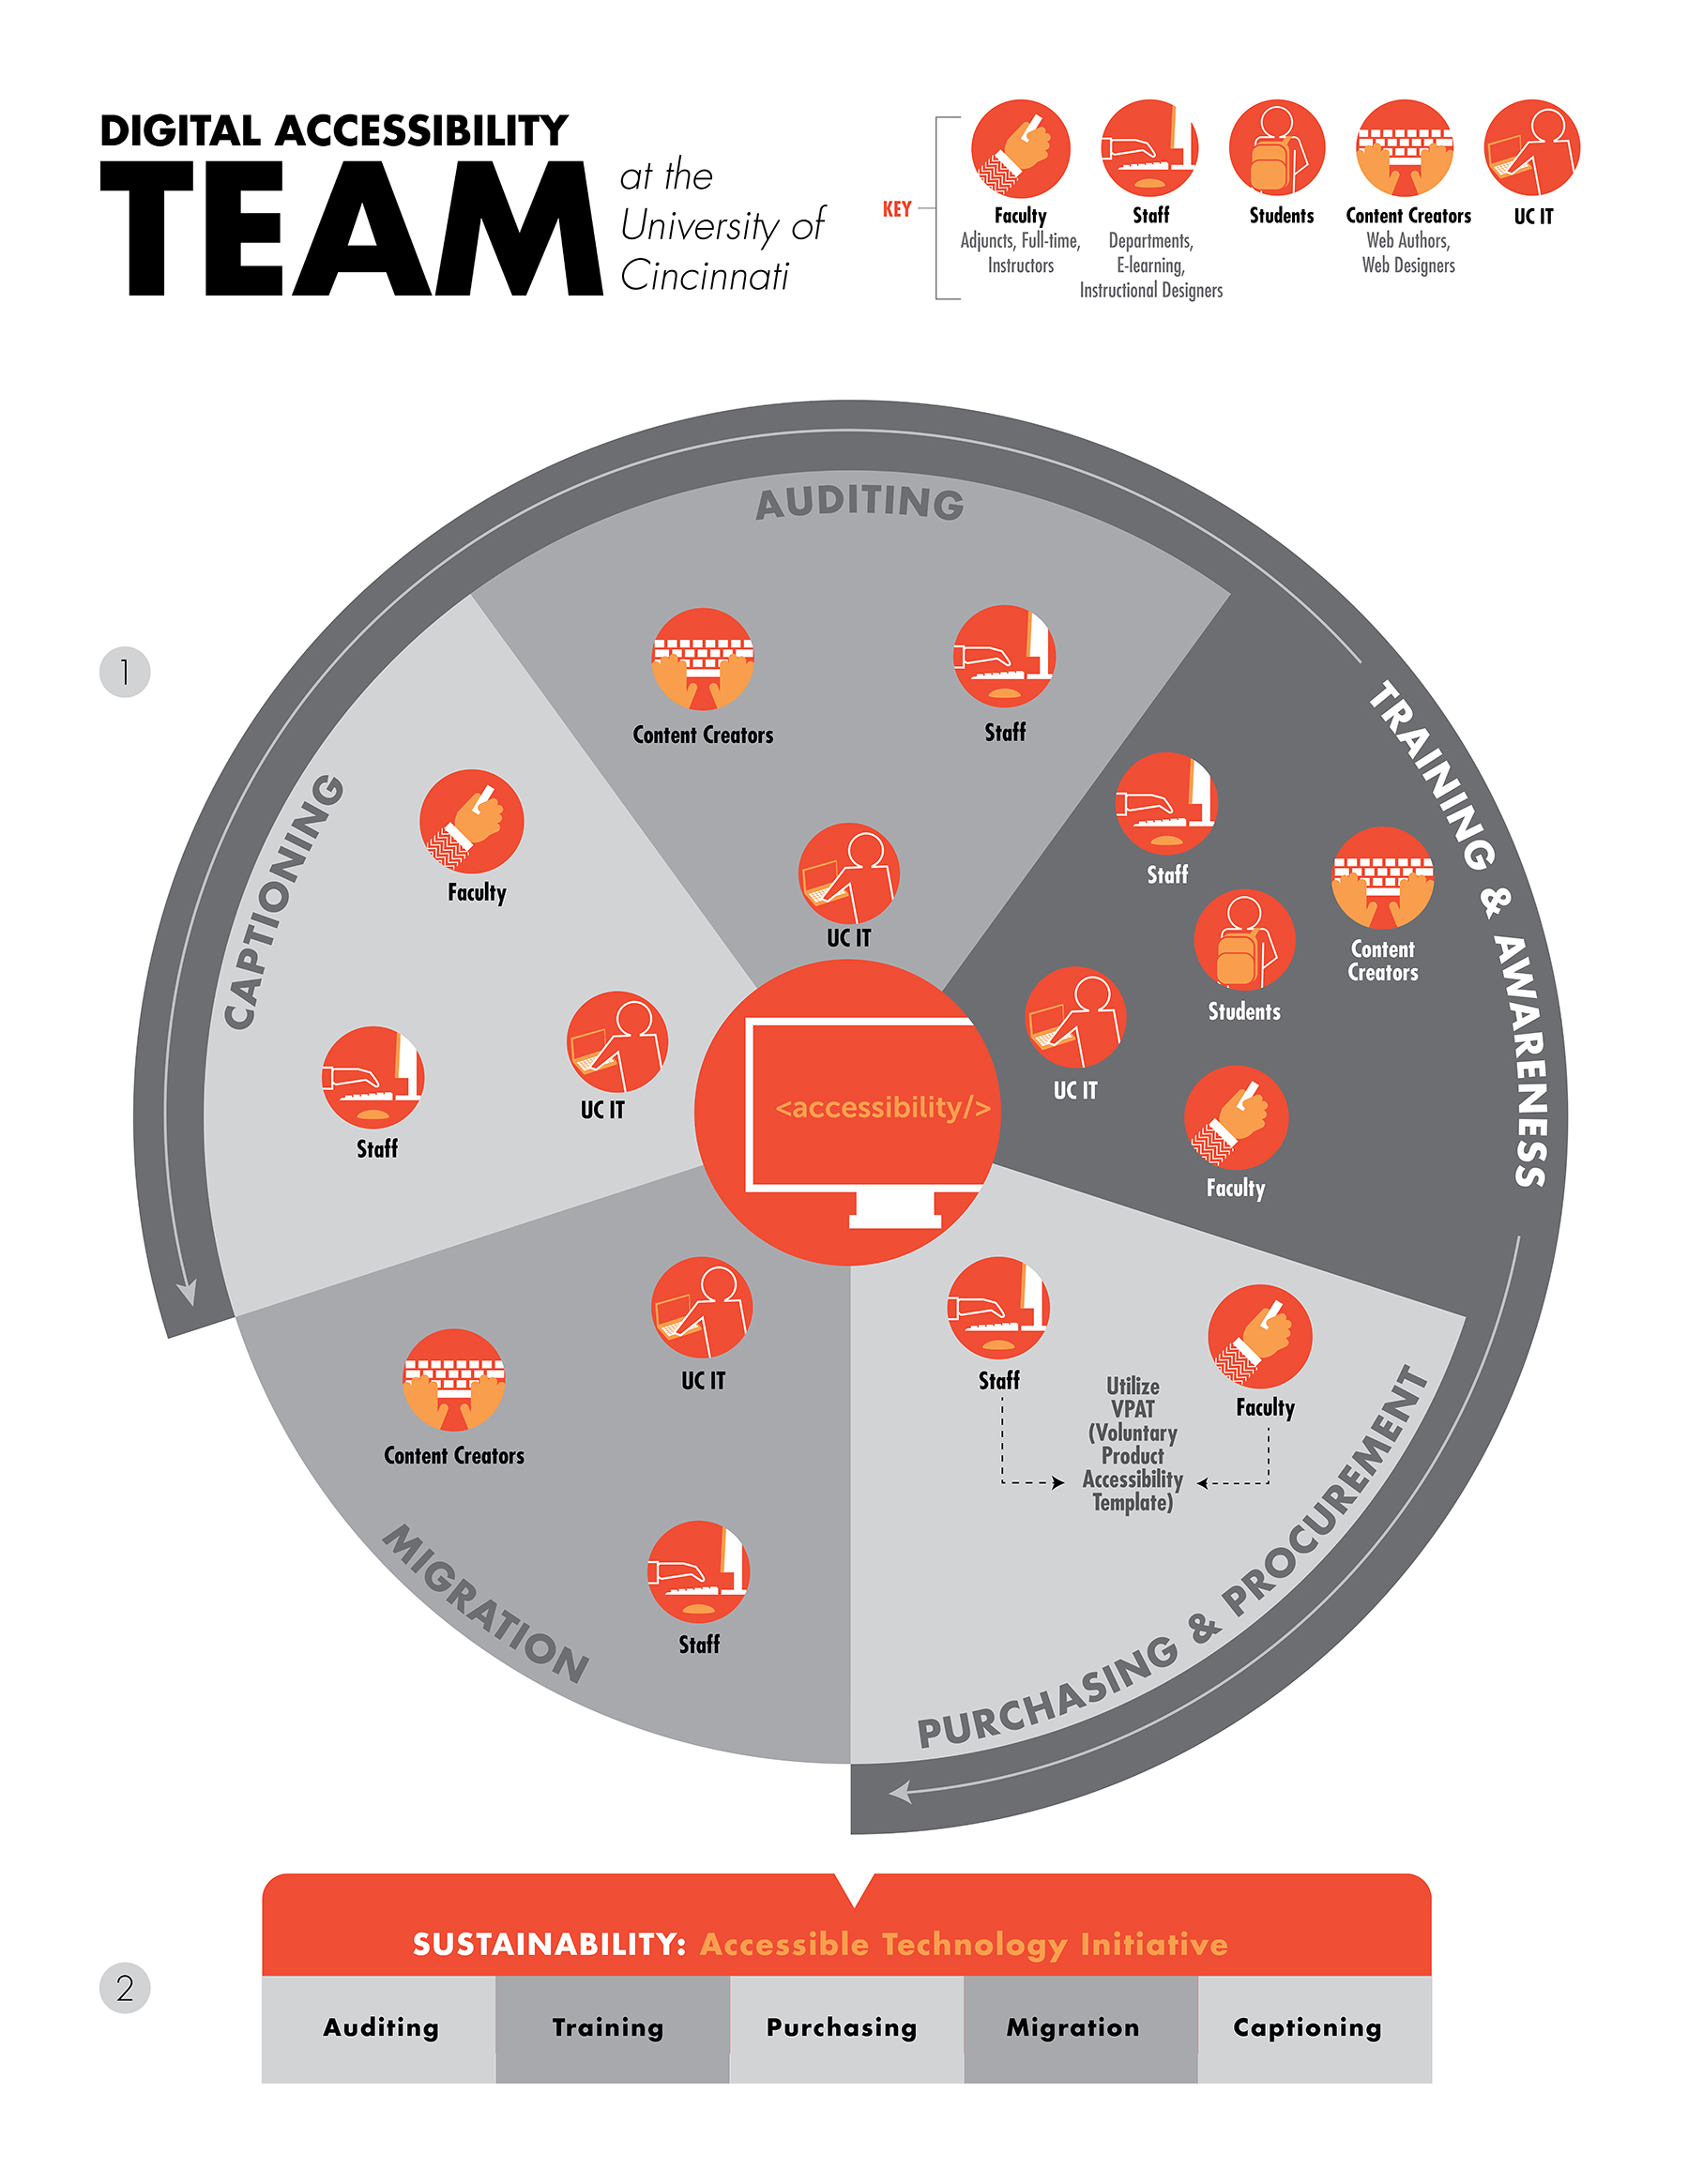 Digital Accessibility Team Infographic